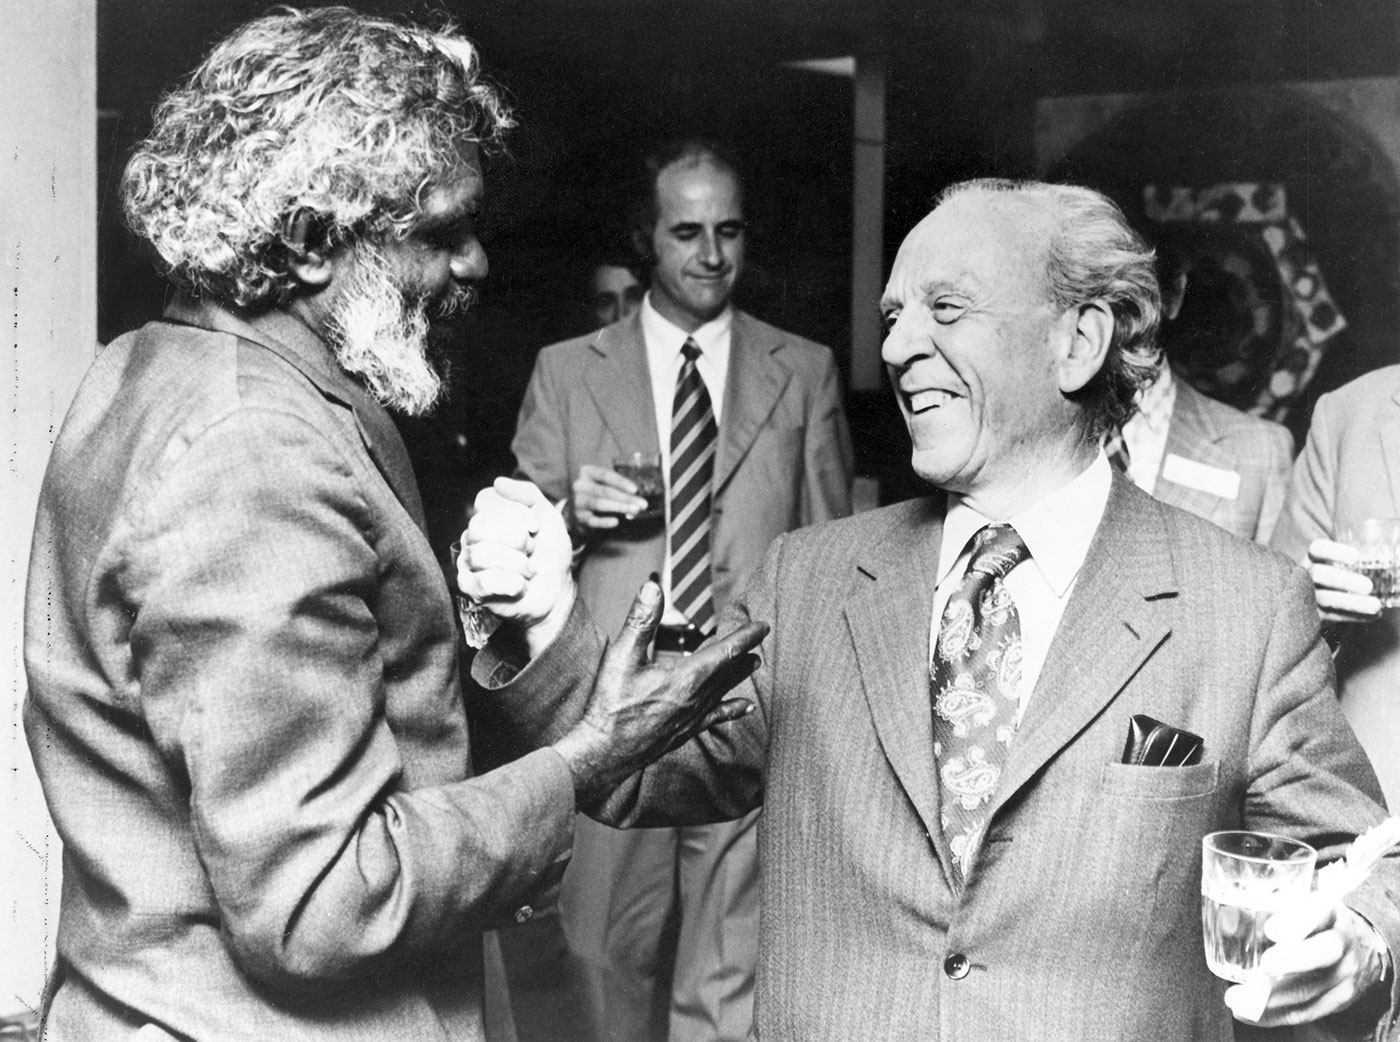 Black and white photo showing the side profile of a man at left. He has whitish-grey curly hair and a beard and extends his right hands towards another man, who has his left hand raised and holds a glass in the right. The man on the right wears a striped suit and paisley tie and is smiling.